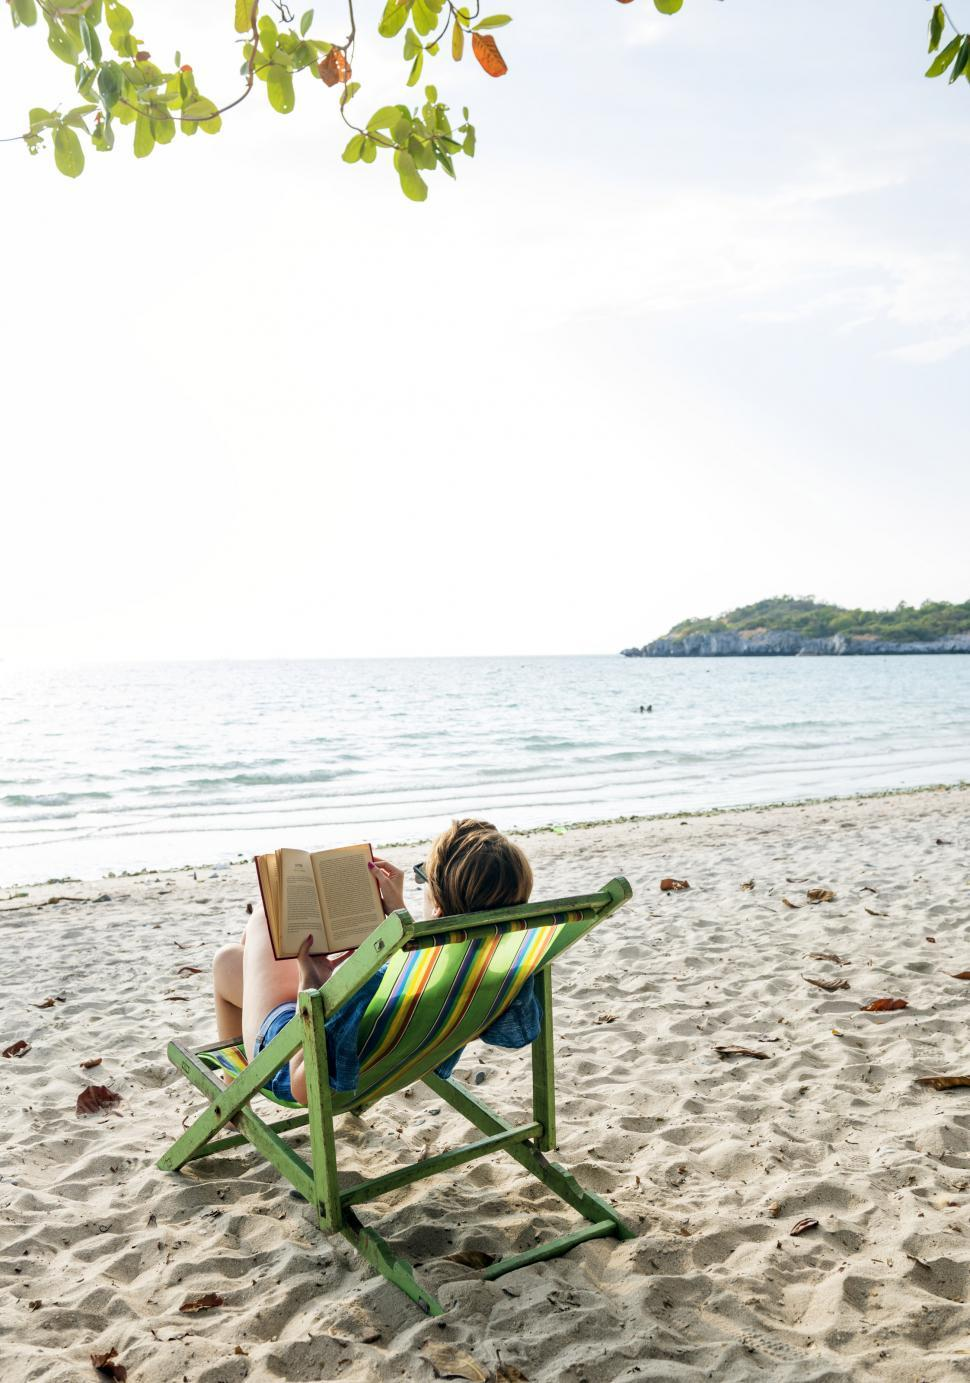 Download Free Stock HD Photo of A young woman reading book on the beach Online